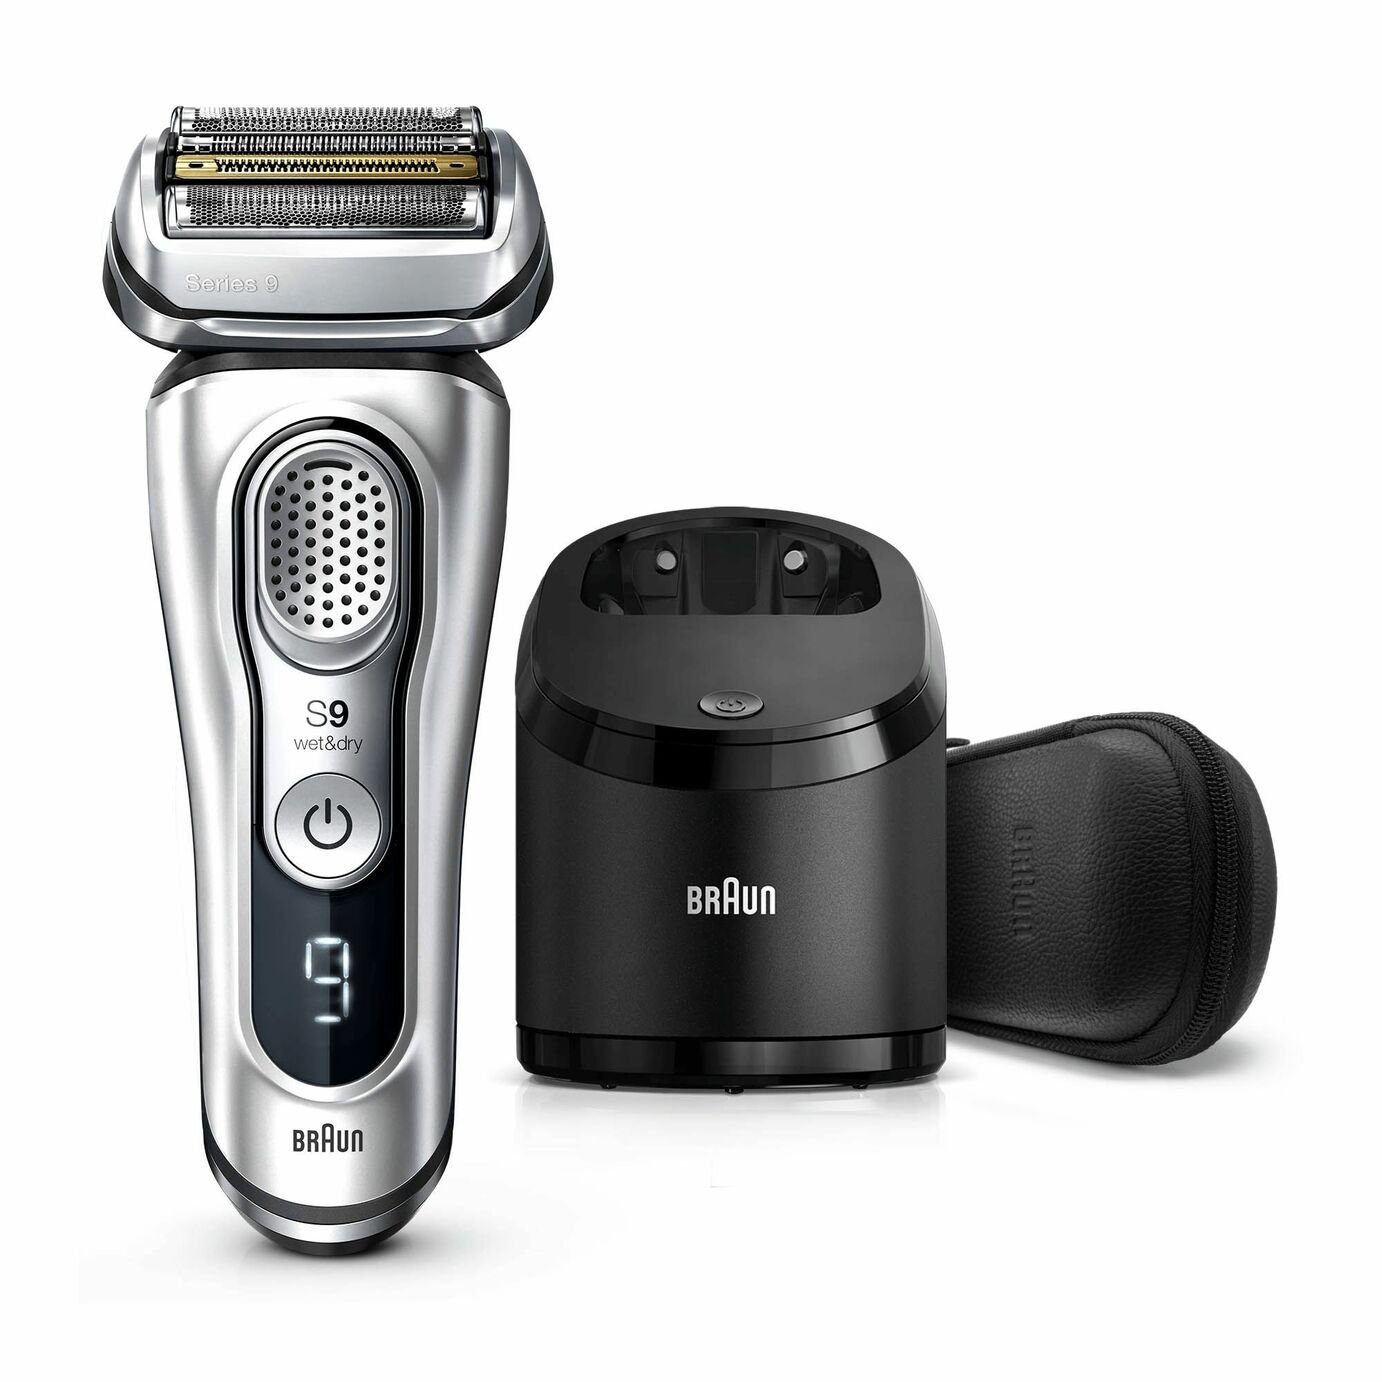 Braun 9390cc Series 9 Electric Shaver